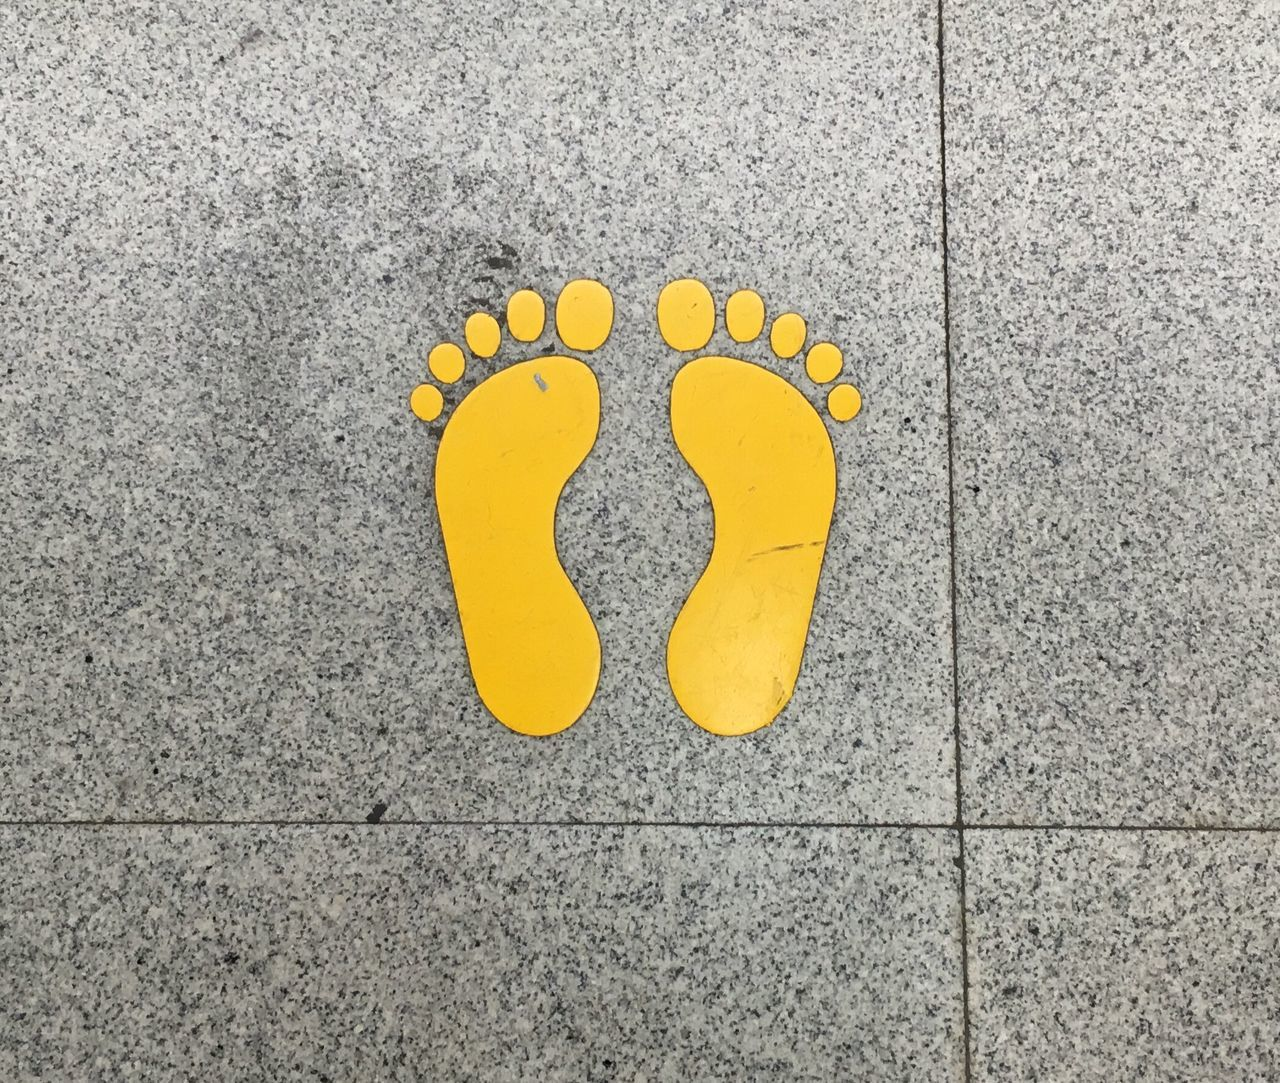 Painted Yellow Feet on Pavement Feet Foot Toes Toe Anatomy Painted Stencil Stencil Art Foot Stencil Shenzhen China Yellow